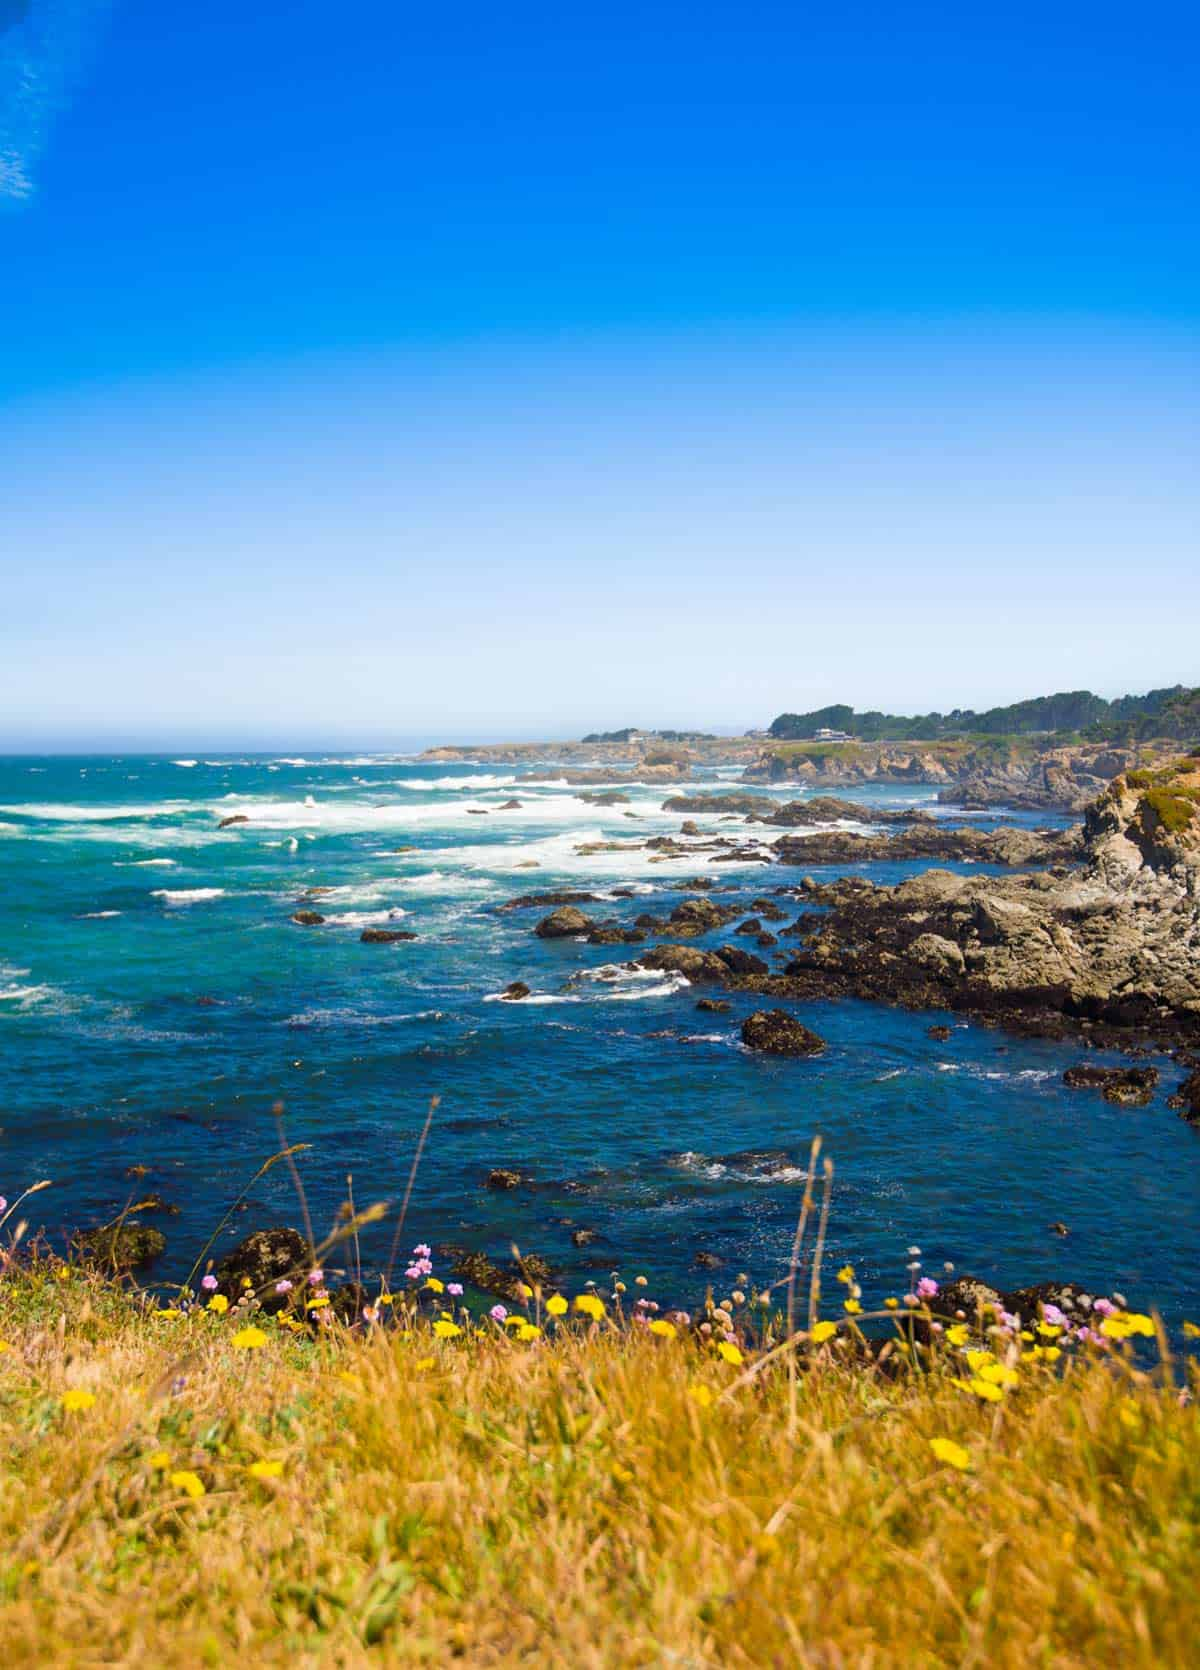 Traveling to Mendocino County, California